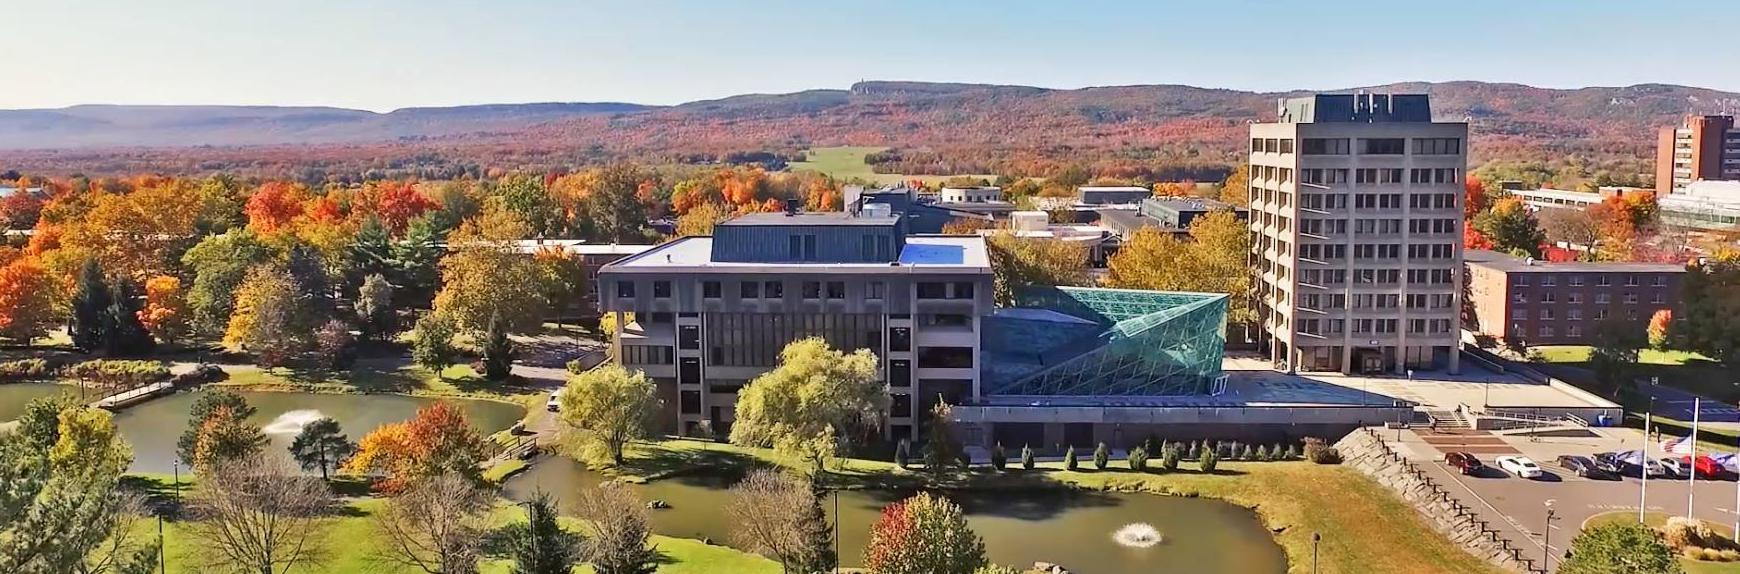 Suny New Paltz Visitors Guide